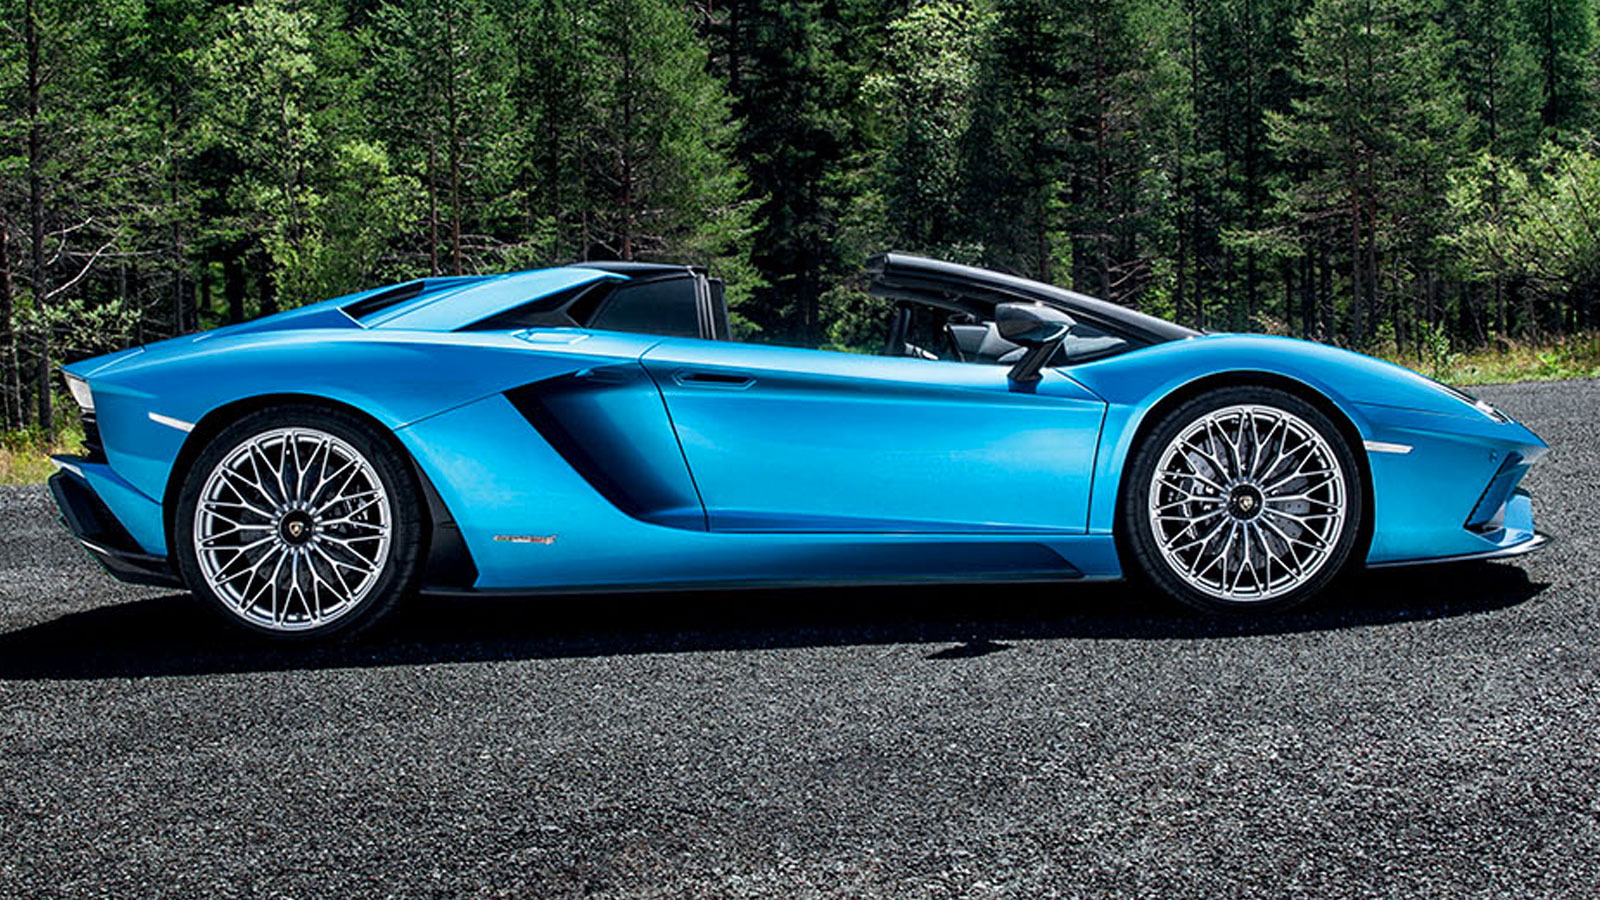 Lamborghini Aventador S Roadster - The Open Top Icon image 12